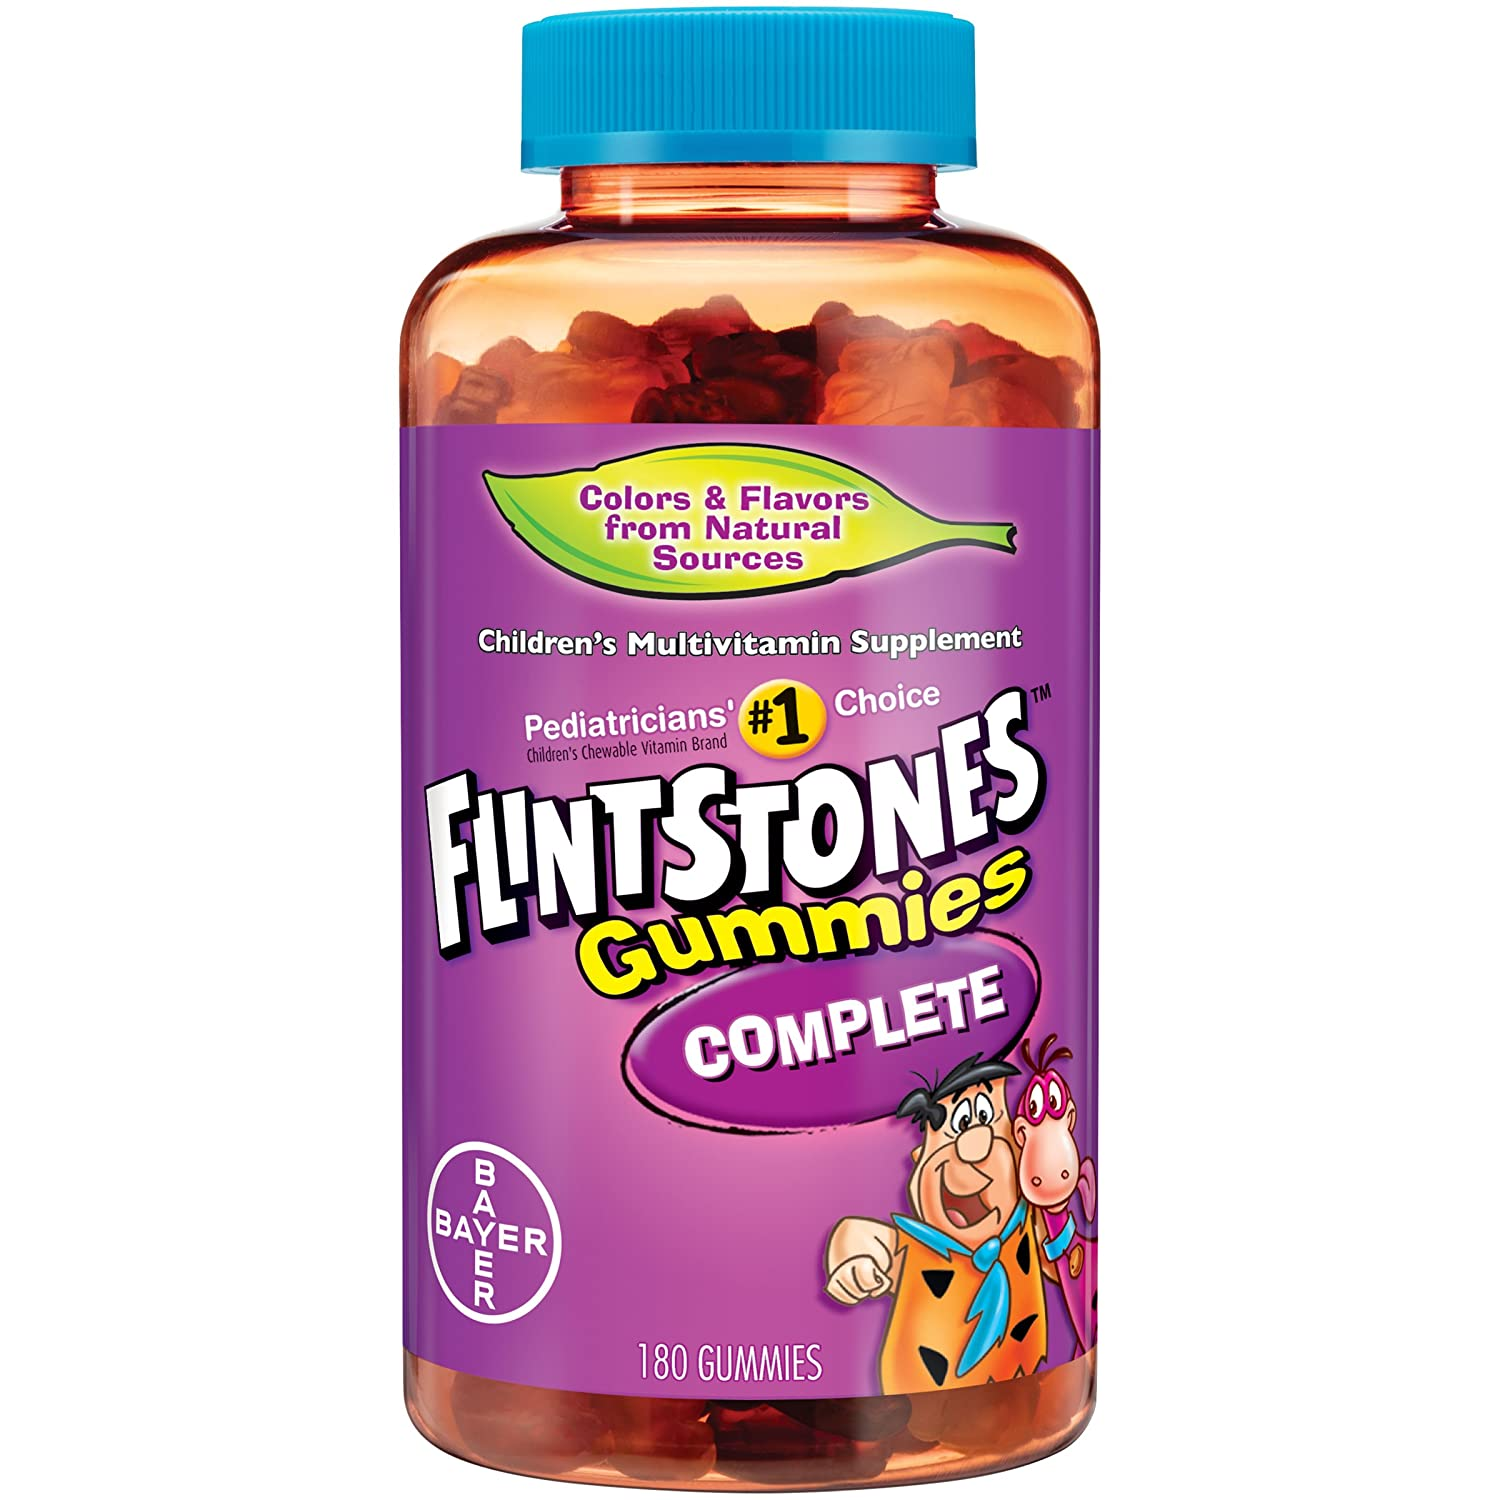 Amazon.com: Flintstones Childrens Complete Multivitamin Gummies, 180 Count (3 Pack) WEDF: Health & Personal Care